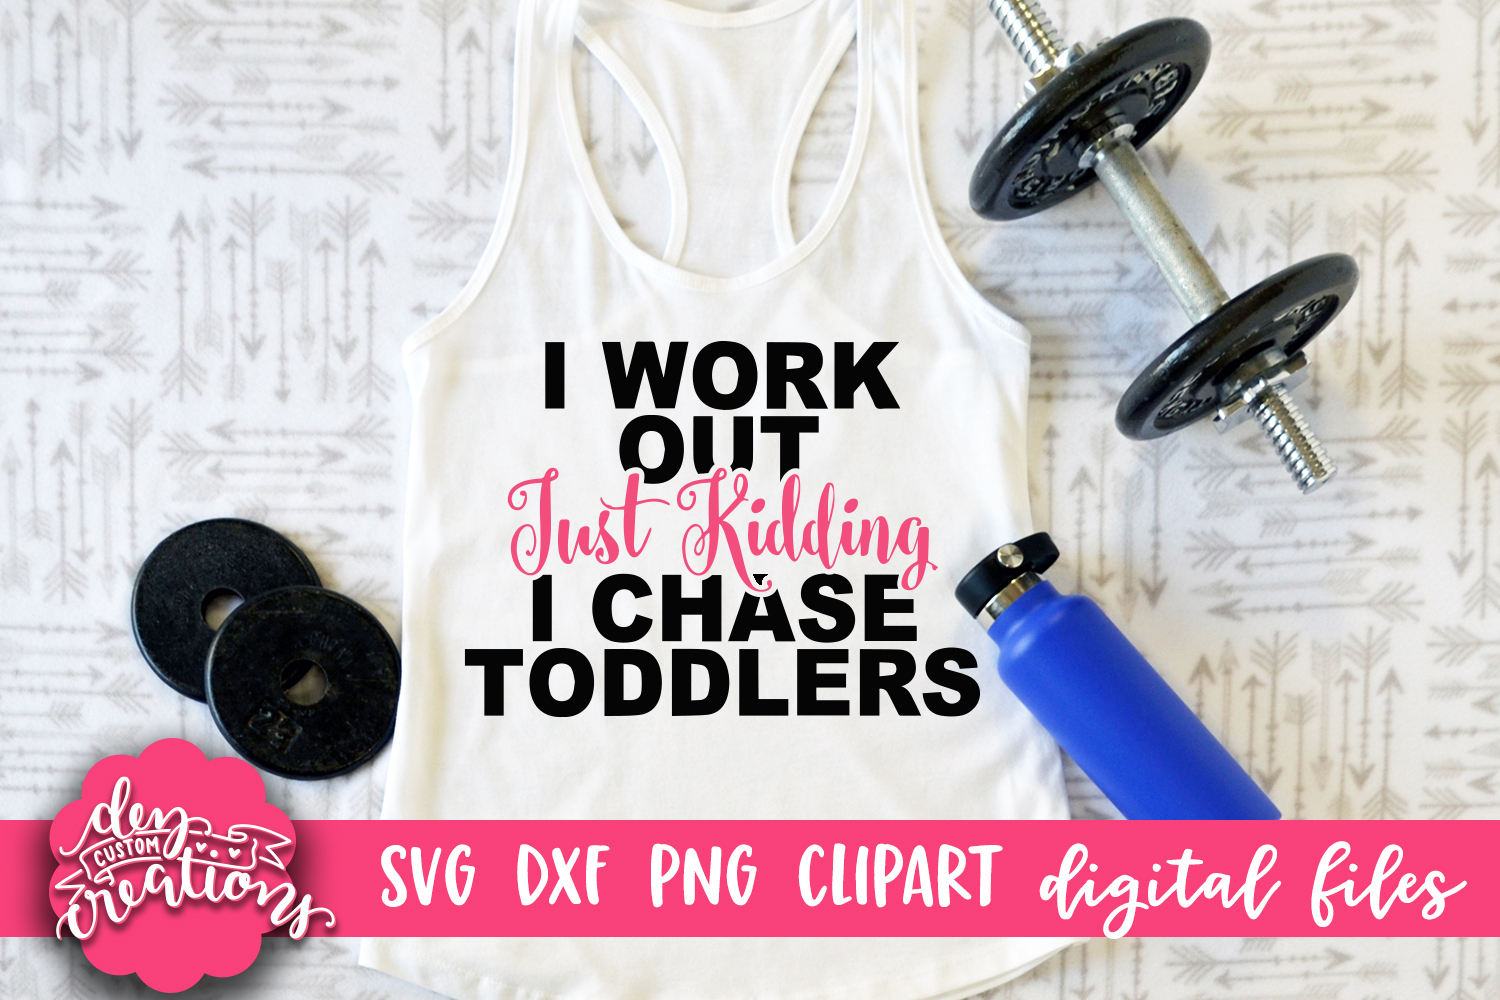 I Workout Just Kidding I Chase Toddlers - SVG - DXF - PNG example image 2